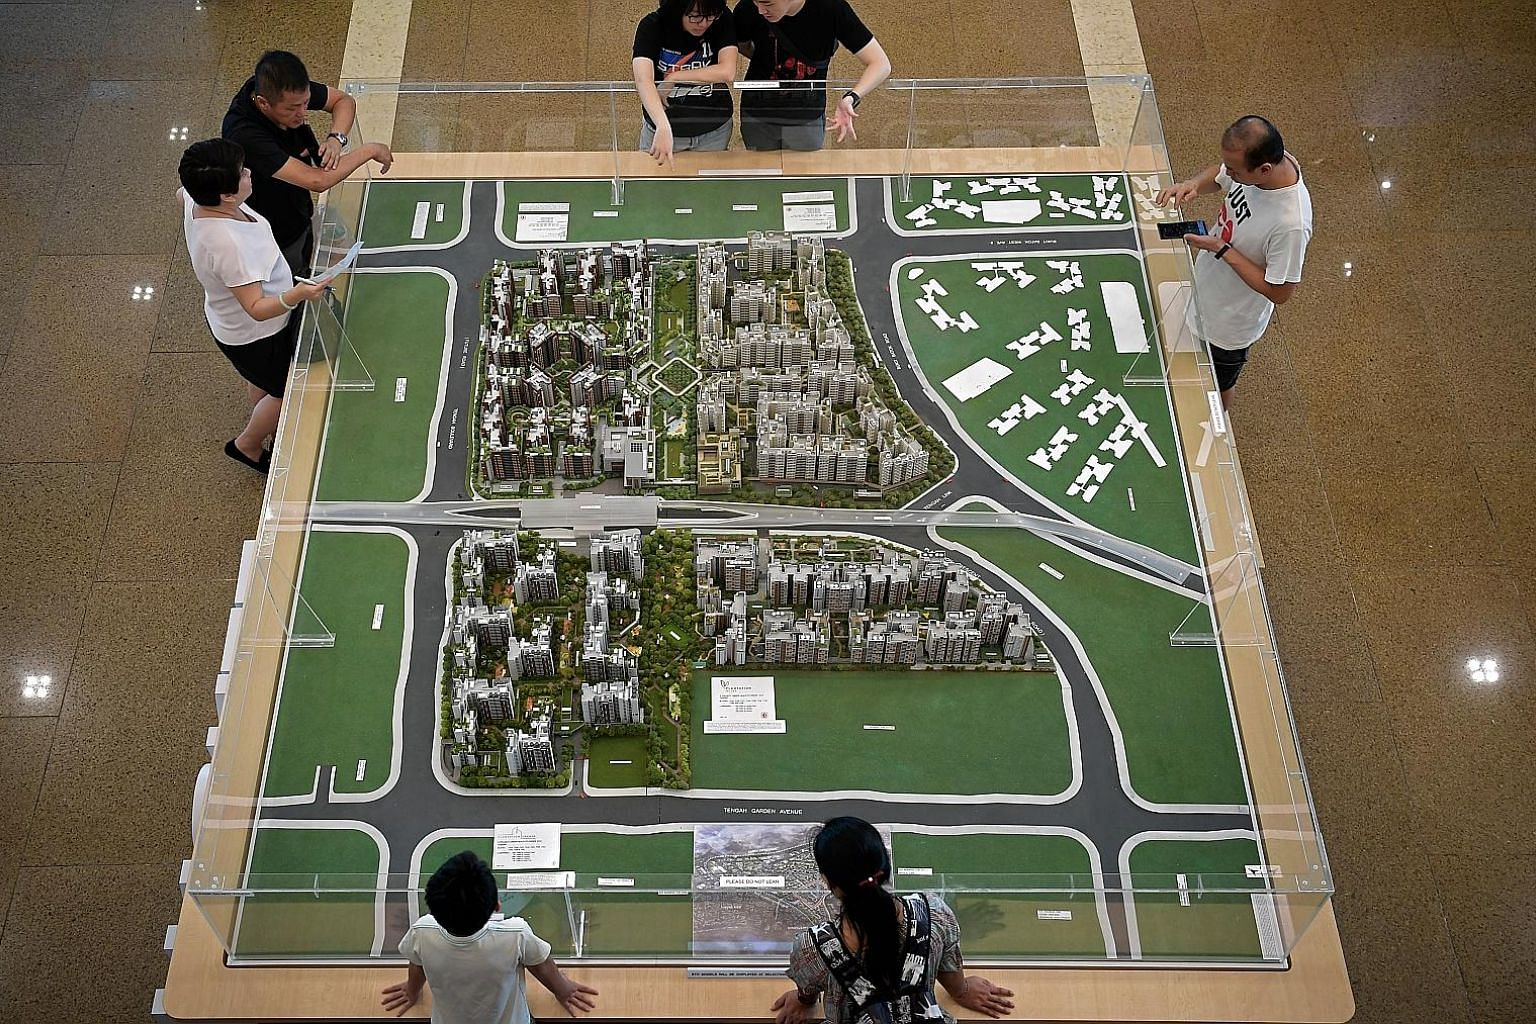 Potential home buyers viewing a model of Housing Board flats at the HDB's Toa Payoh office. Mr Paul Wee of PropertyGuru Group says the lowered interest rates on Sibor-pegged loans could help home owners alleviate what could be their biggest recurring